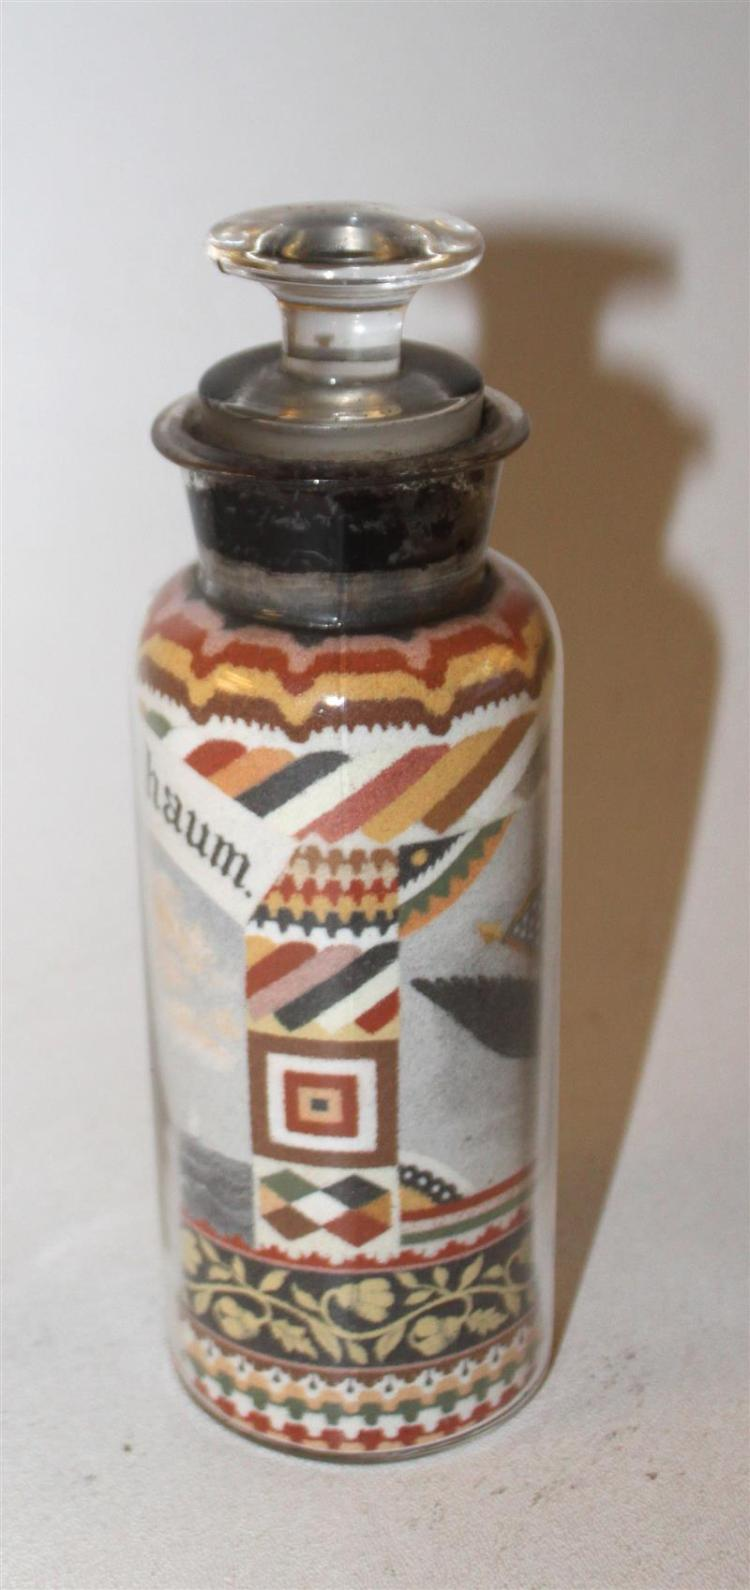 ANDREW CLEMENS SAND ART BOTTLE Multicolored sand arranged in a clear glass wax-sealed apothecary bottle. Striated borders spanning t...